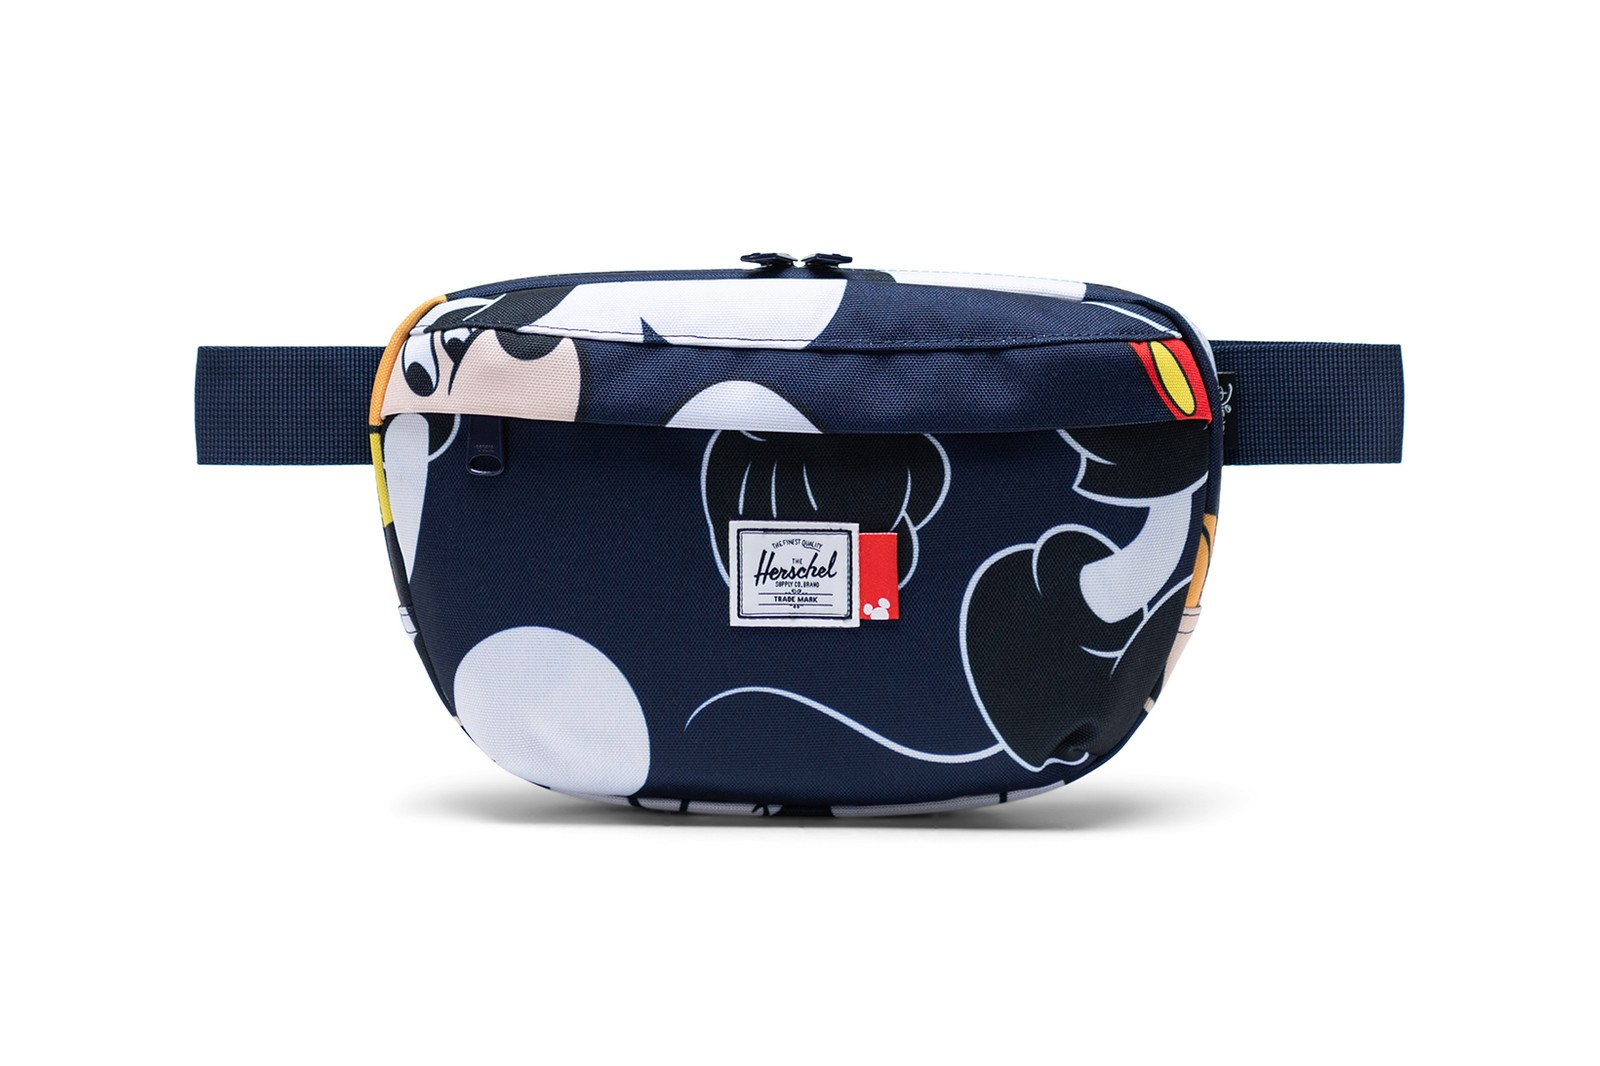 Disney Mickey Mouse x Herschel Supply Collaboration Bag Collection Backpack Fanny Pack Duffel